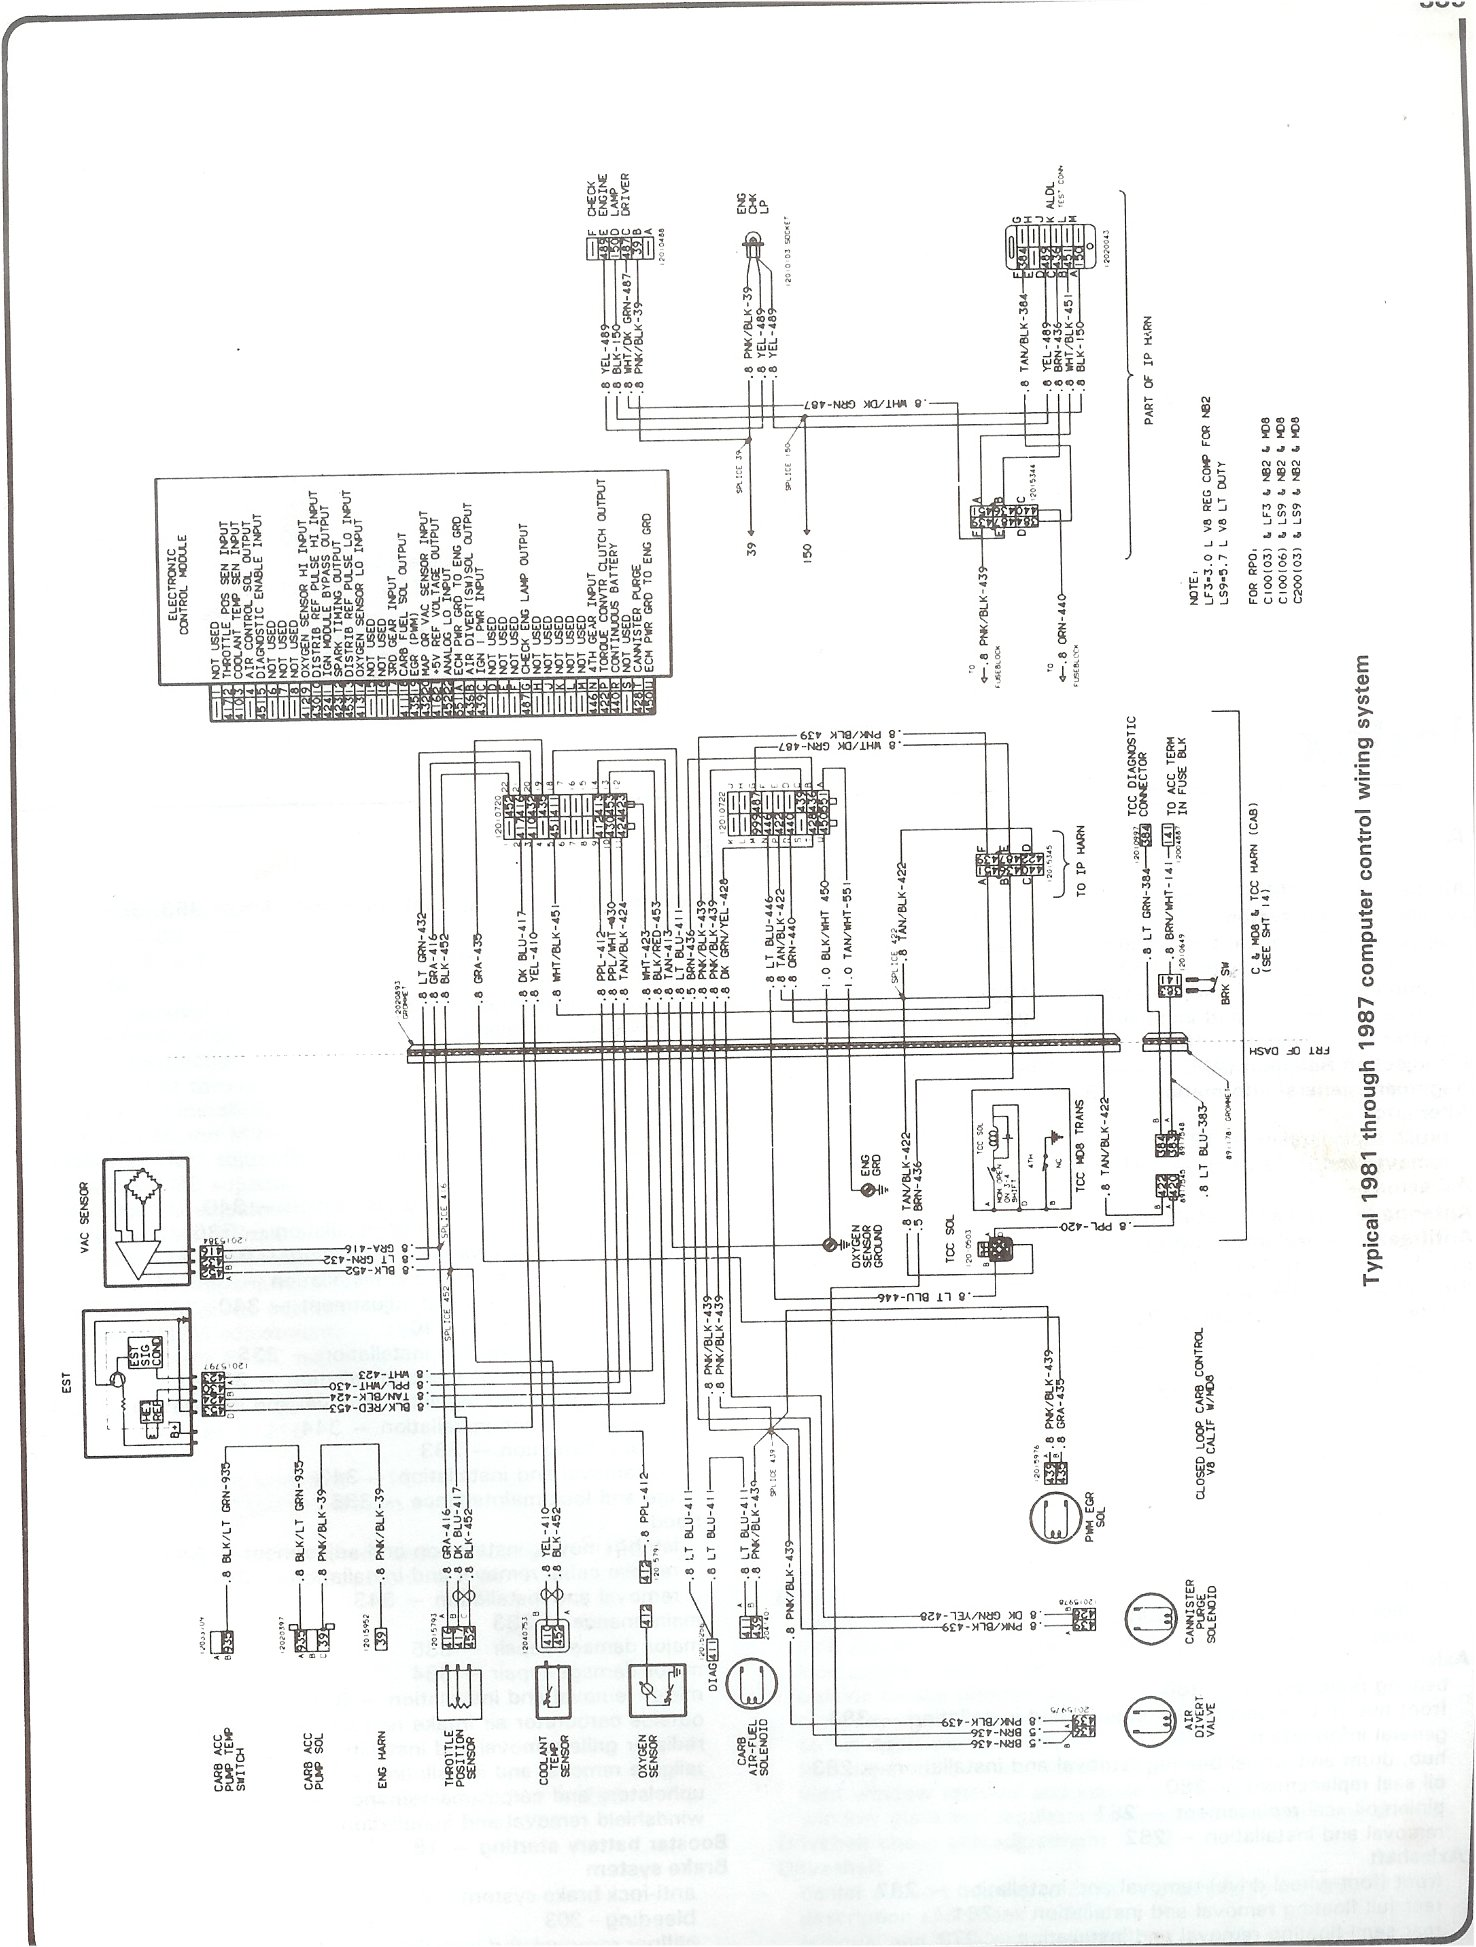 complete 73 87 wiring diagrams rh forum 73 87chevytrucks com 85 Chevy Truck Wiring Diagram 79 Chevy Truck Wiring Diagram